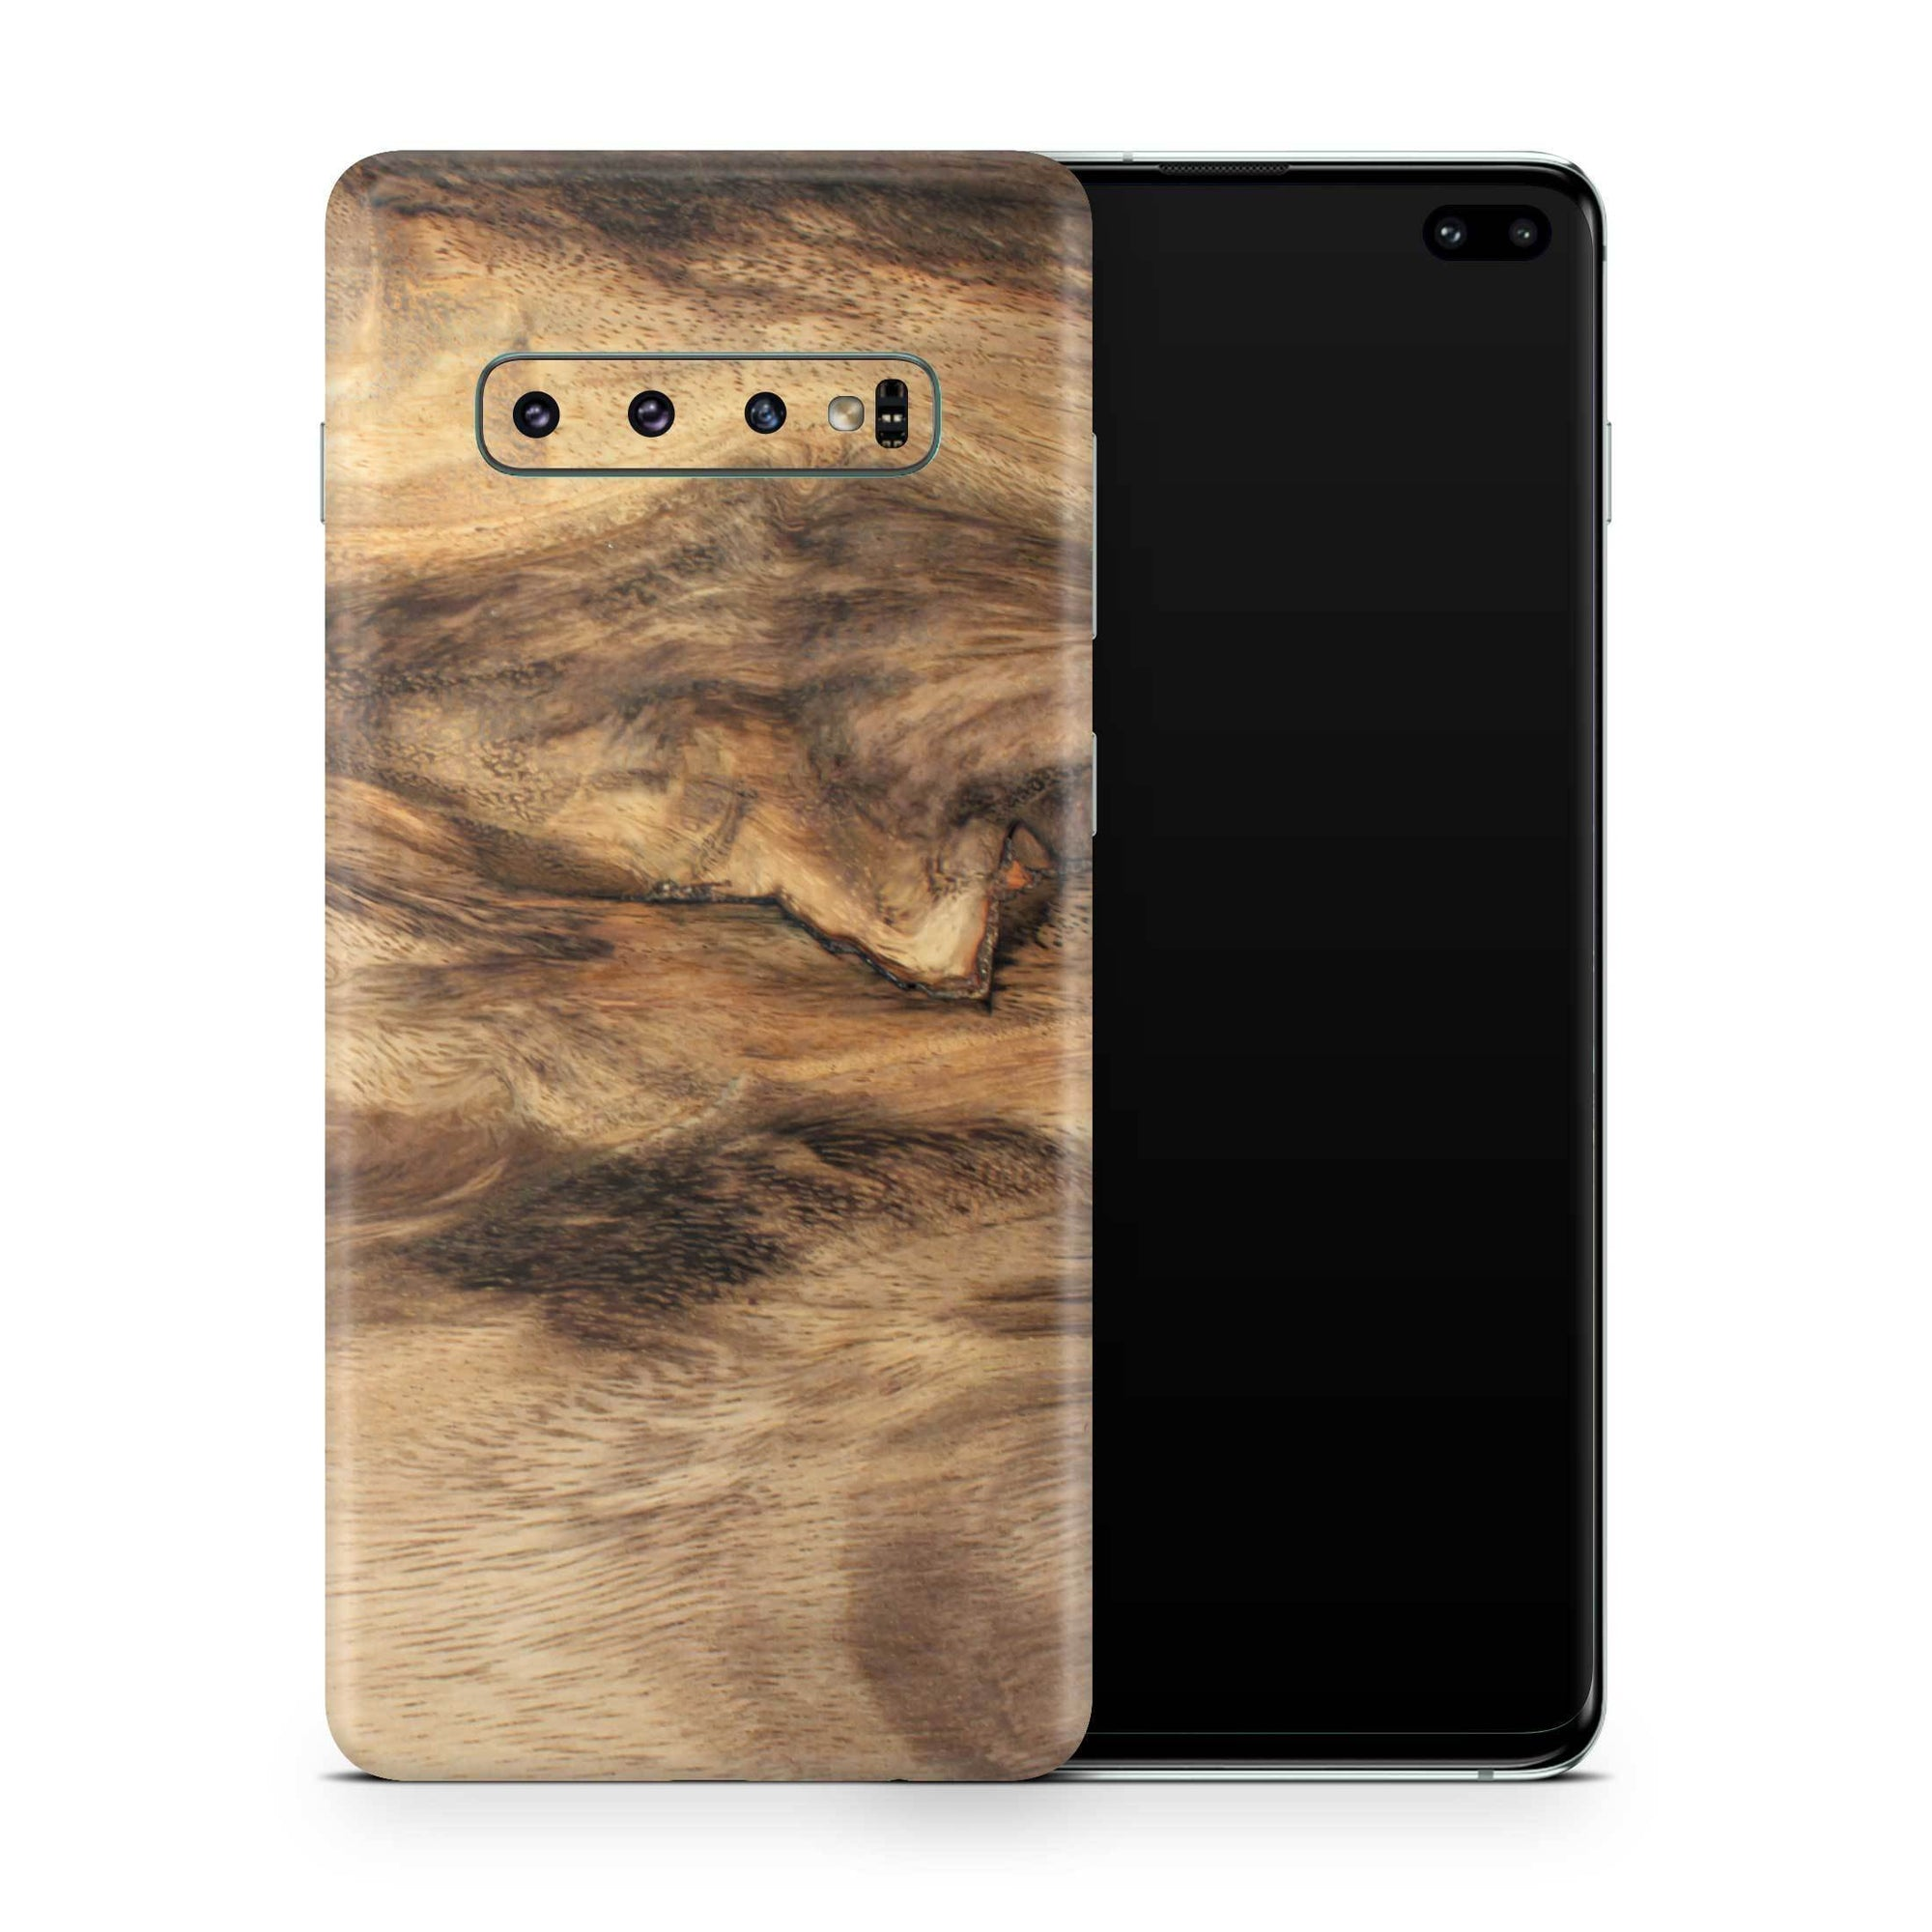 Wood Galaxy S10 Plus Skin + Case